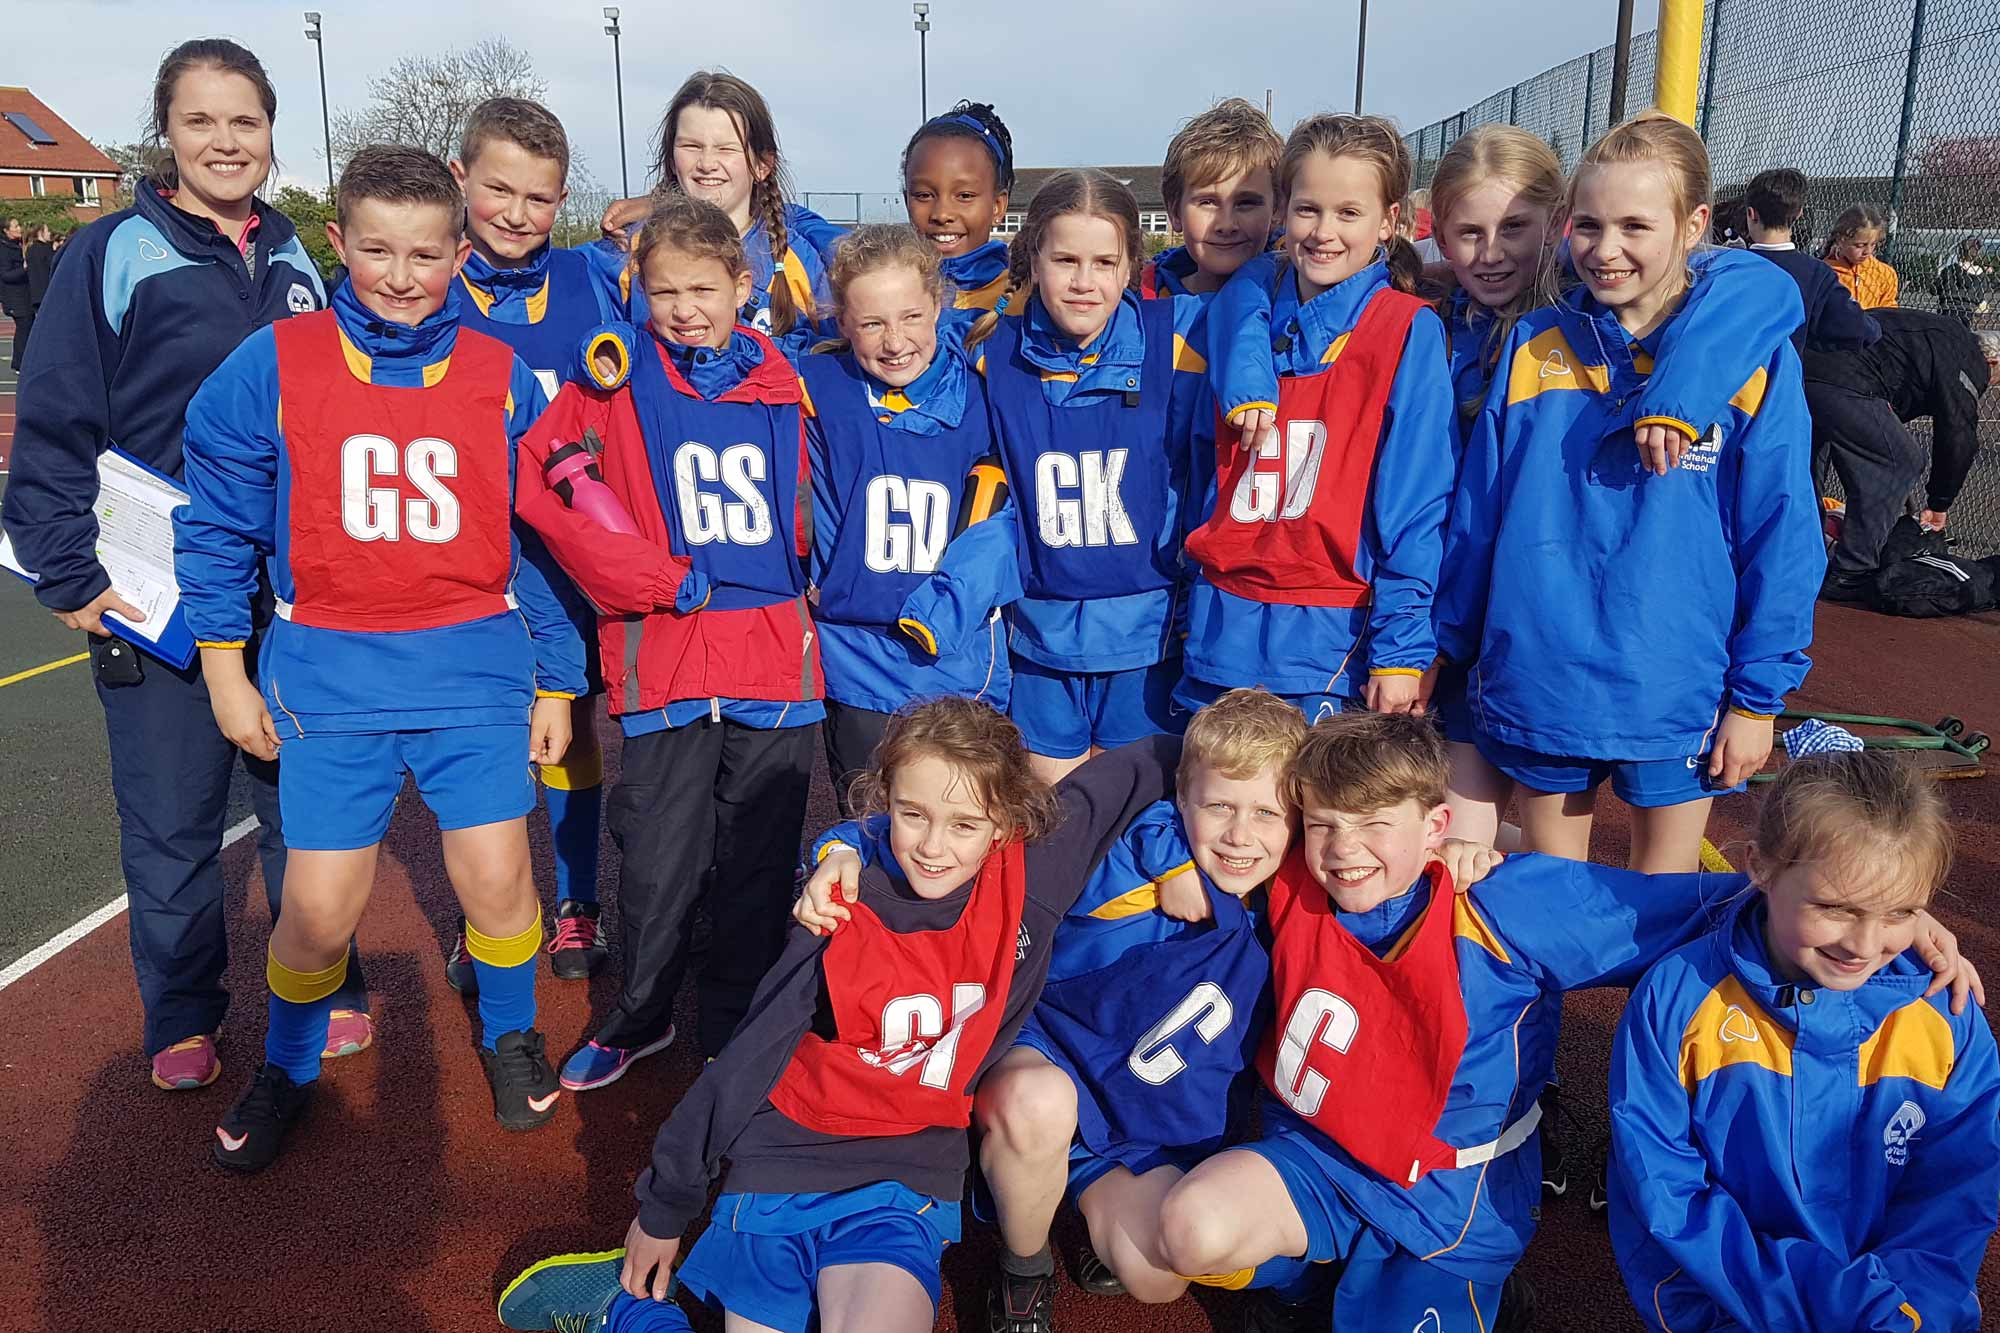 Netball team at Whitehall Independent School